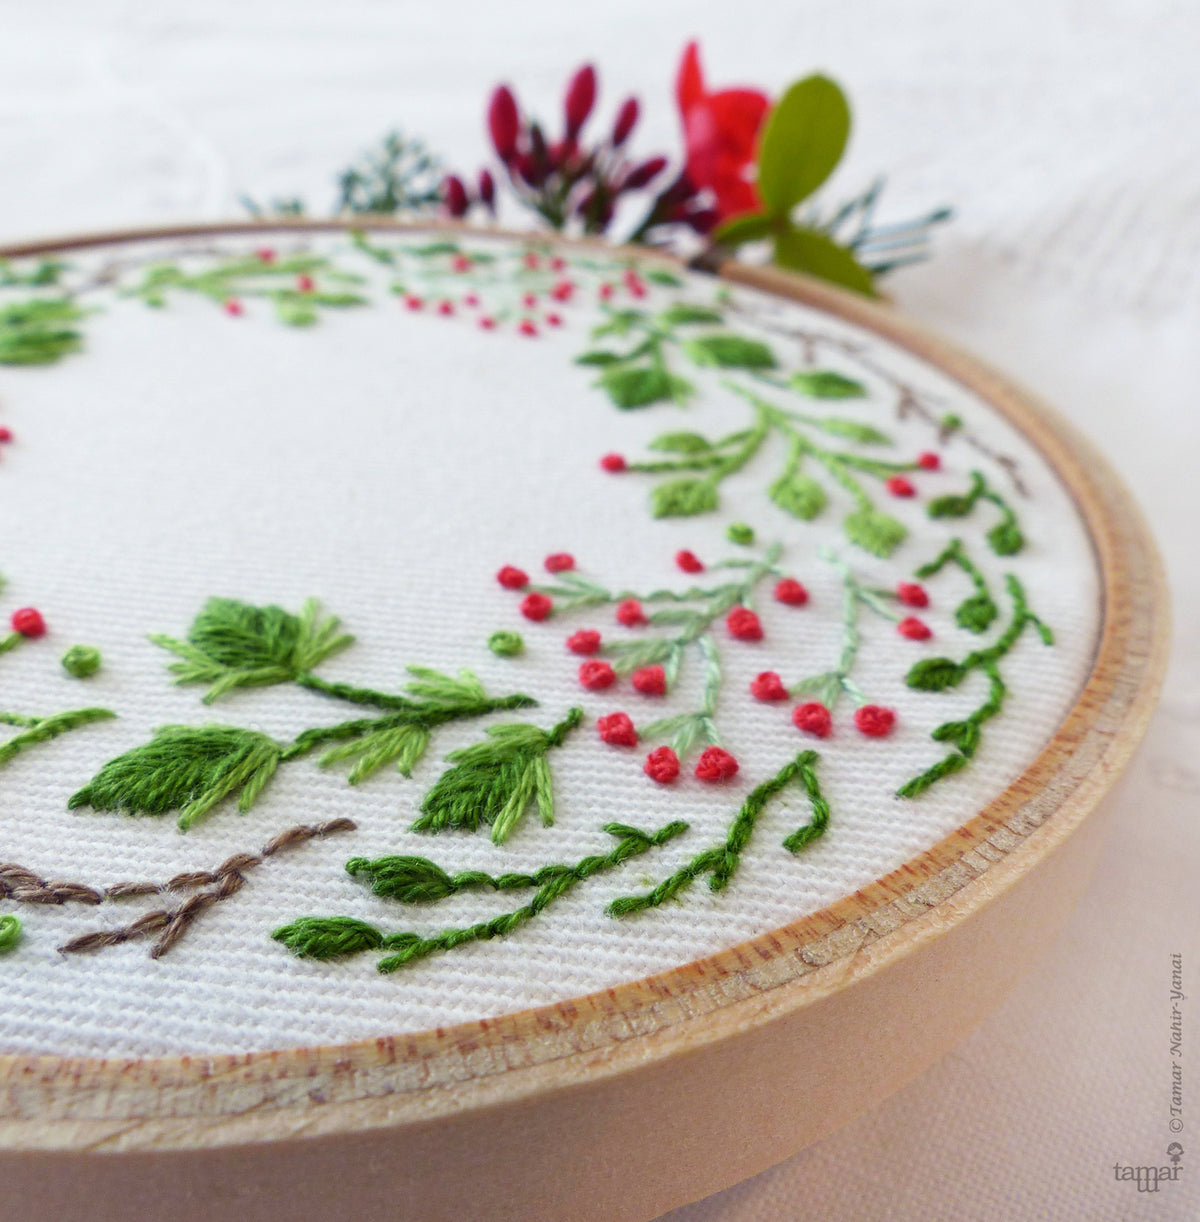 Tamar Nahir Embroidery Kit - Christmas Crown Embroidery Kit - Snuggly Monkey